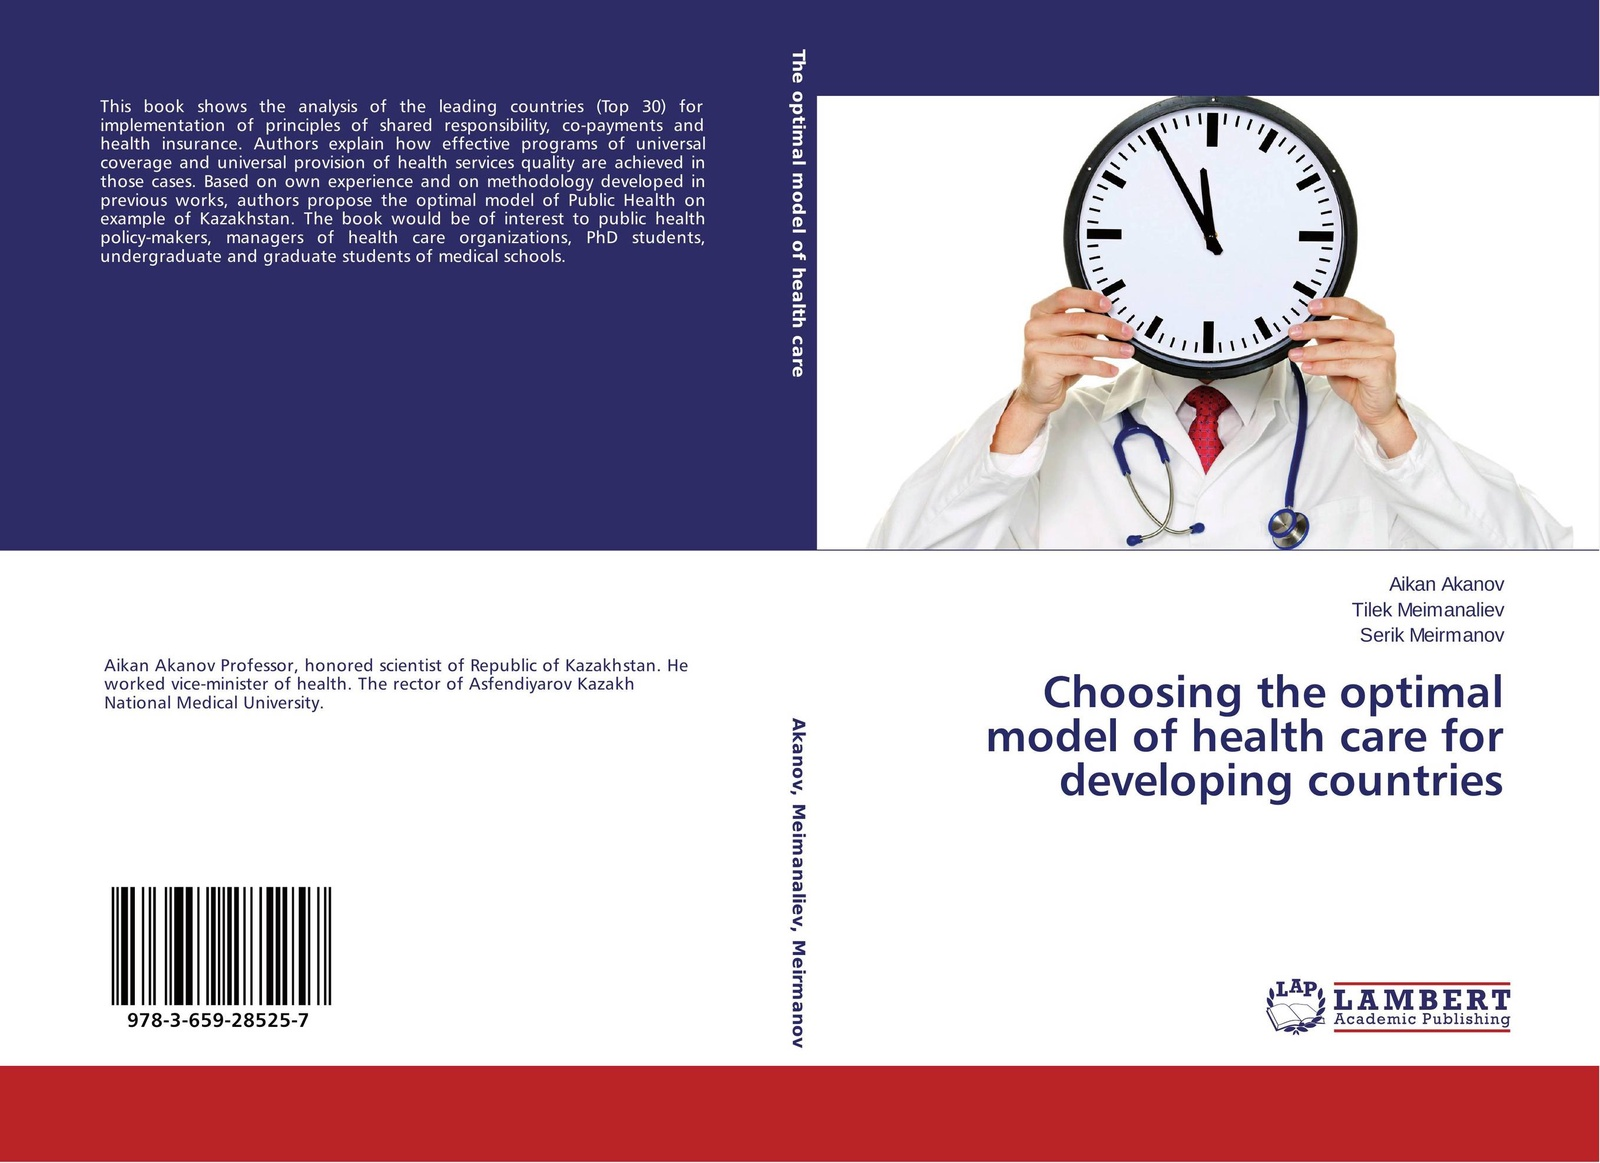 Aikan Akanov,Tilek Meimanaliev and Serik Meirmanov Choosing the optimal model of health care for developing countries optimal health strategy in poorest developing countries